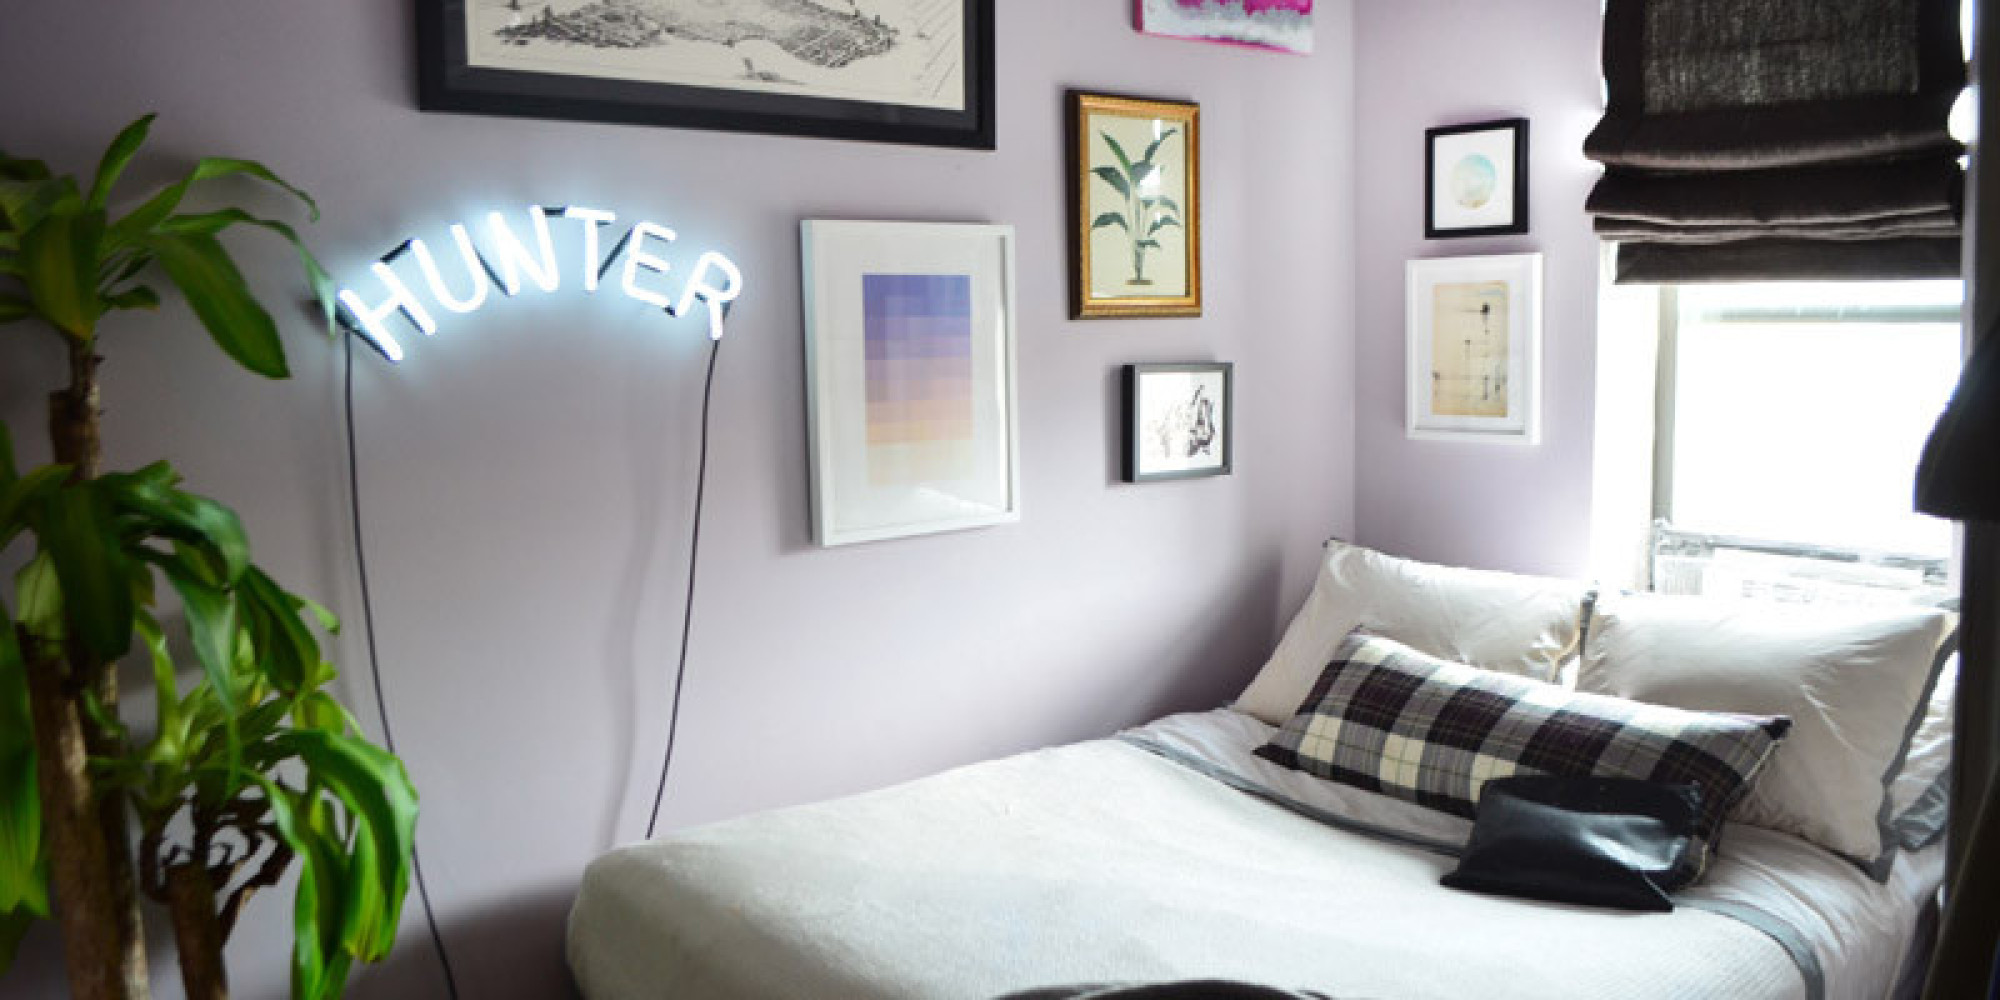 Small bedroom tricks from a real life tiny home huffpost for Small square room ideas